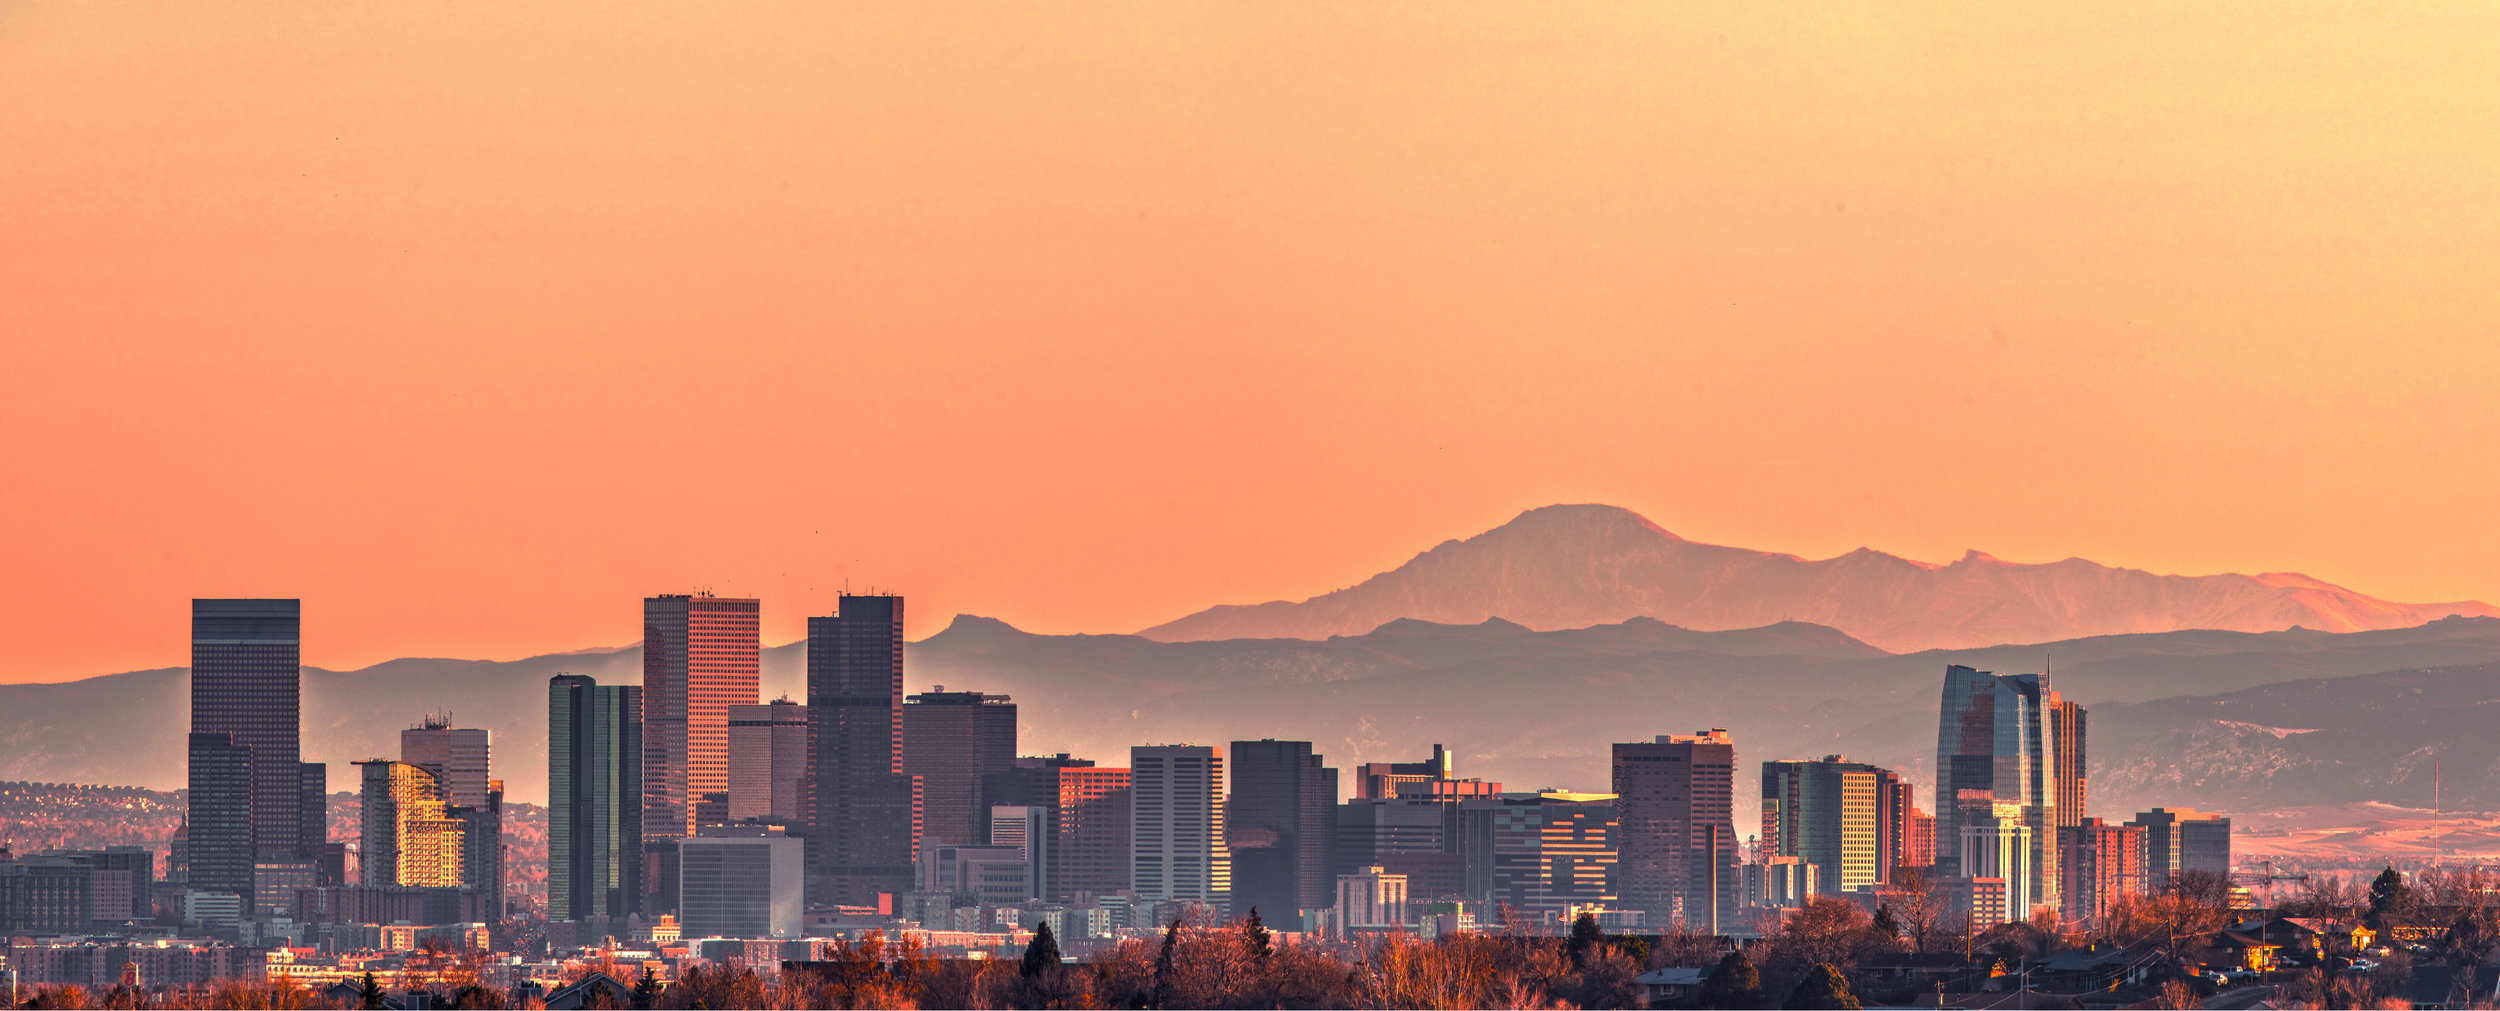 Denver skyline small shutterstock_1241196481 (1).jpg